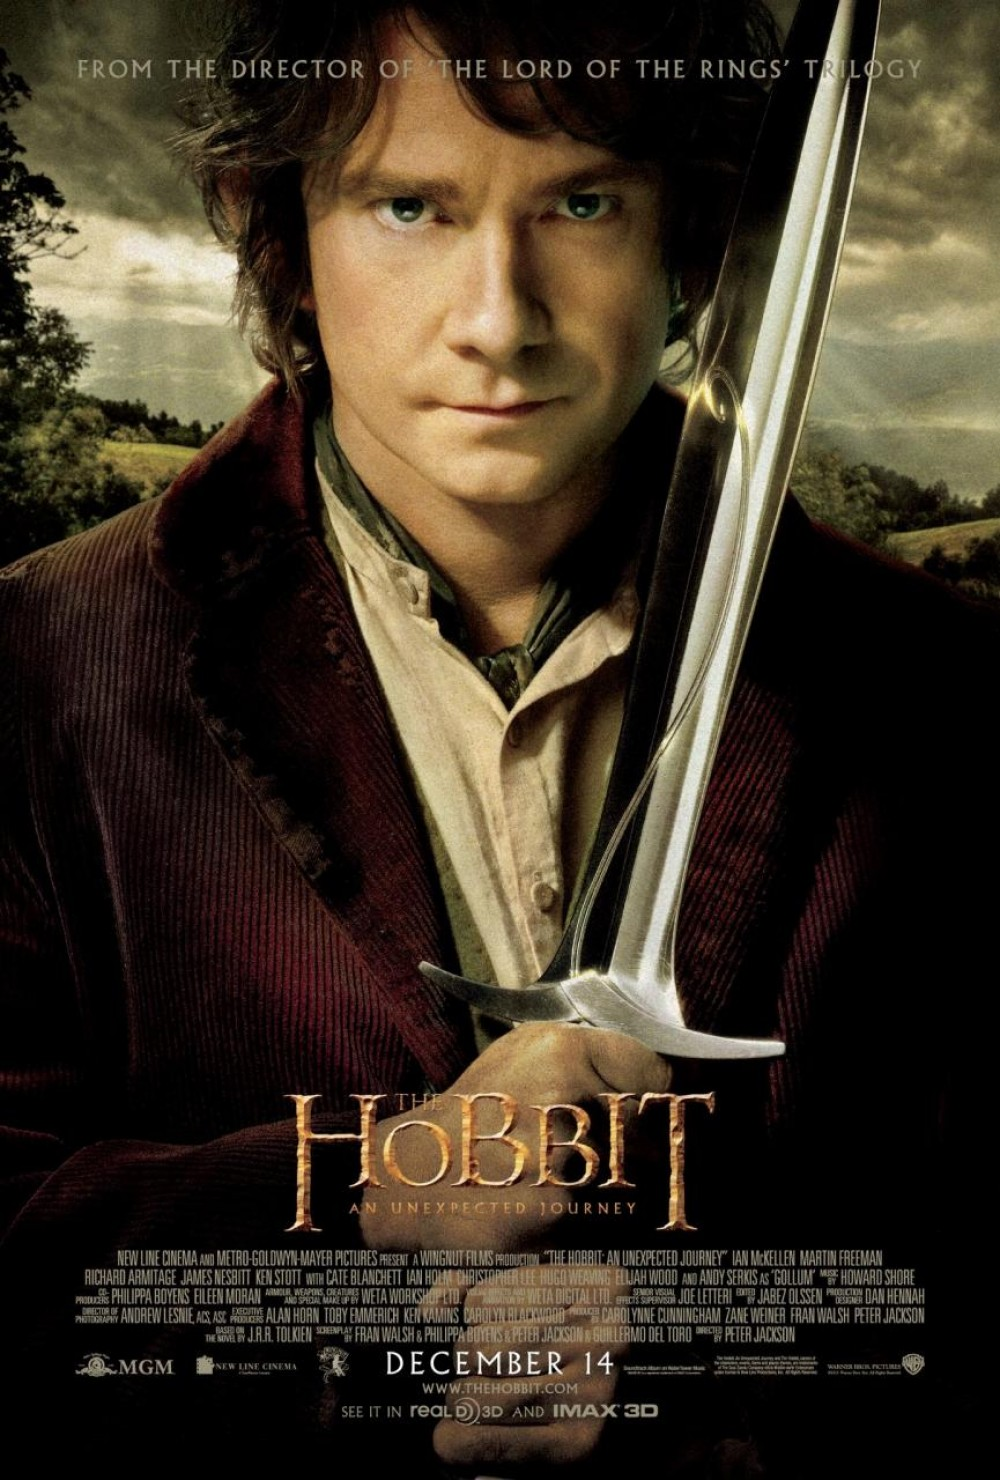 http://www.filmofilia.com/wp-content/uploads/2012/09/THE-HOBBIT-AN-UNEXPECTED-JOURNEY-Poster.jpg